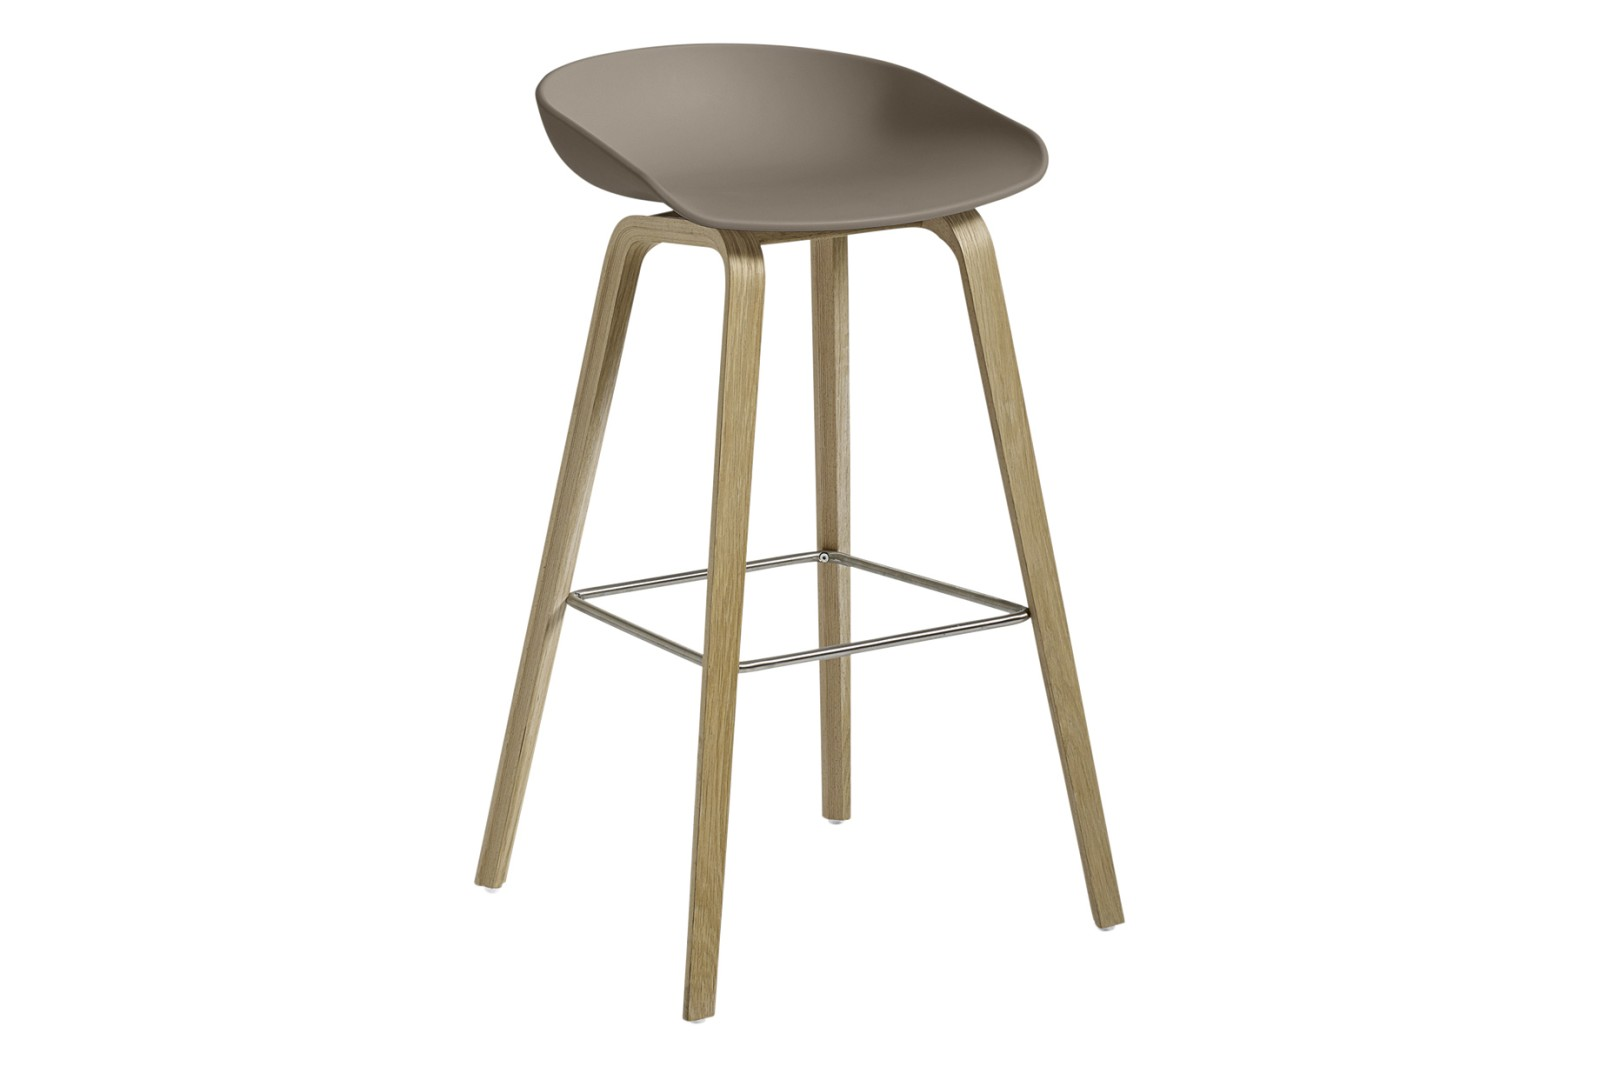 AAS 32 High Stool Plastic Khaki, Wood Soaped Oak, Metal Stainless Steel